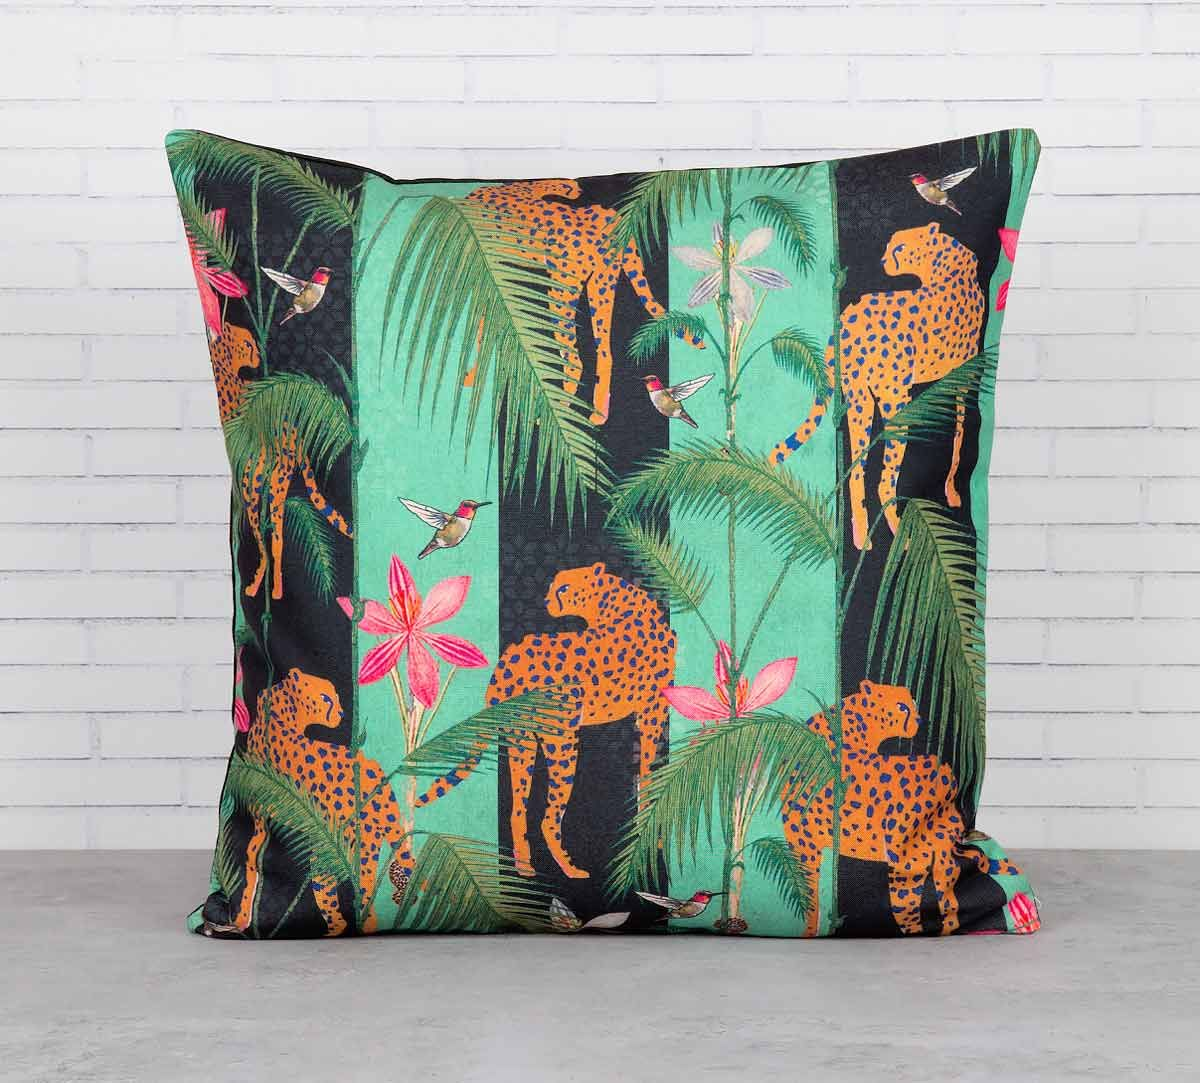 India Circus The Famished Cheetah Cushion Cover